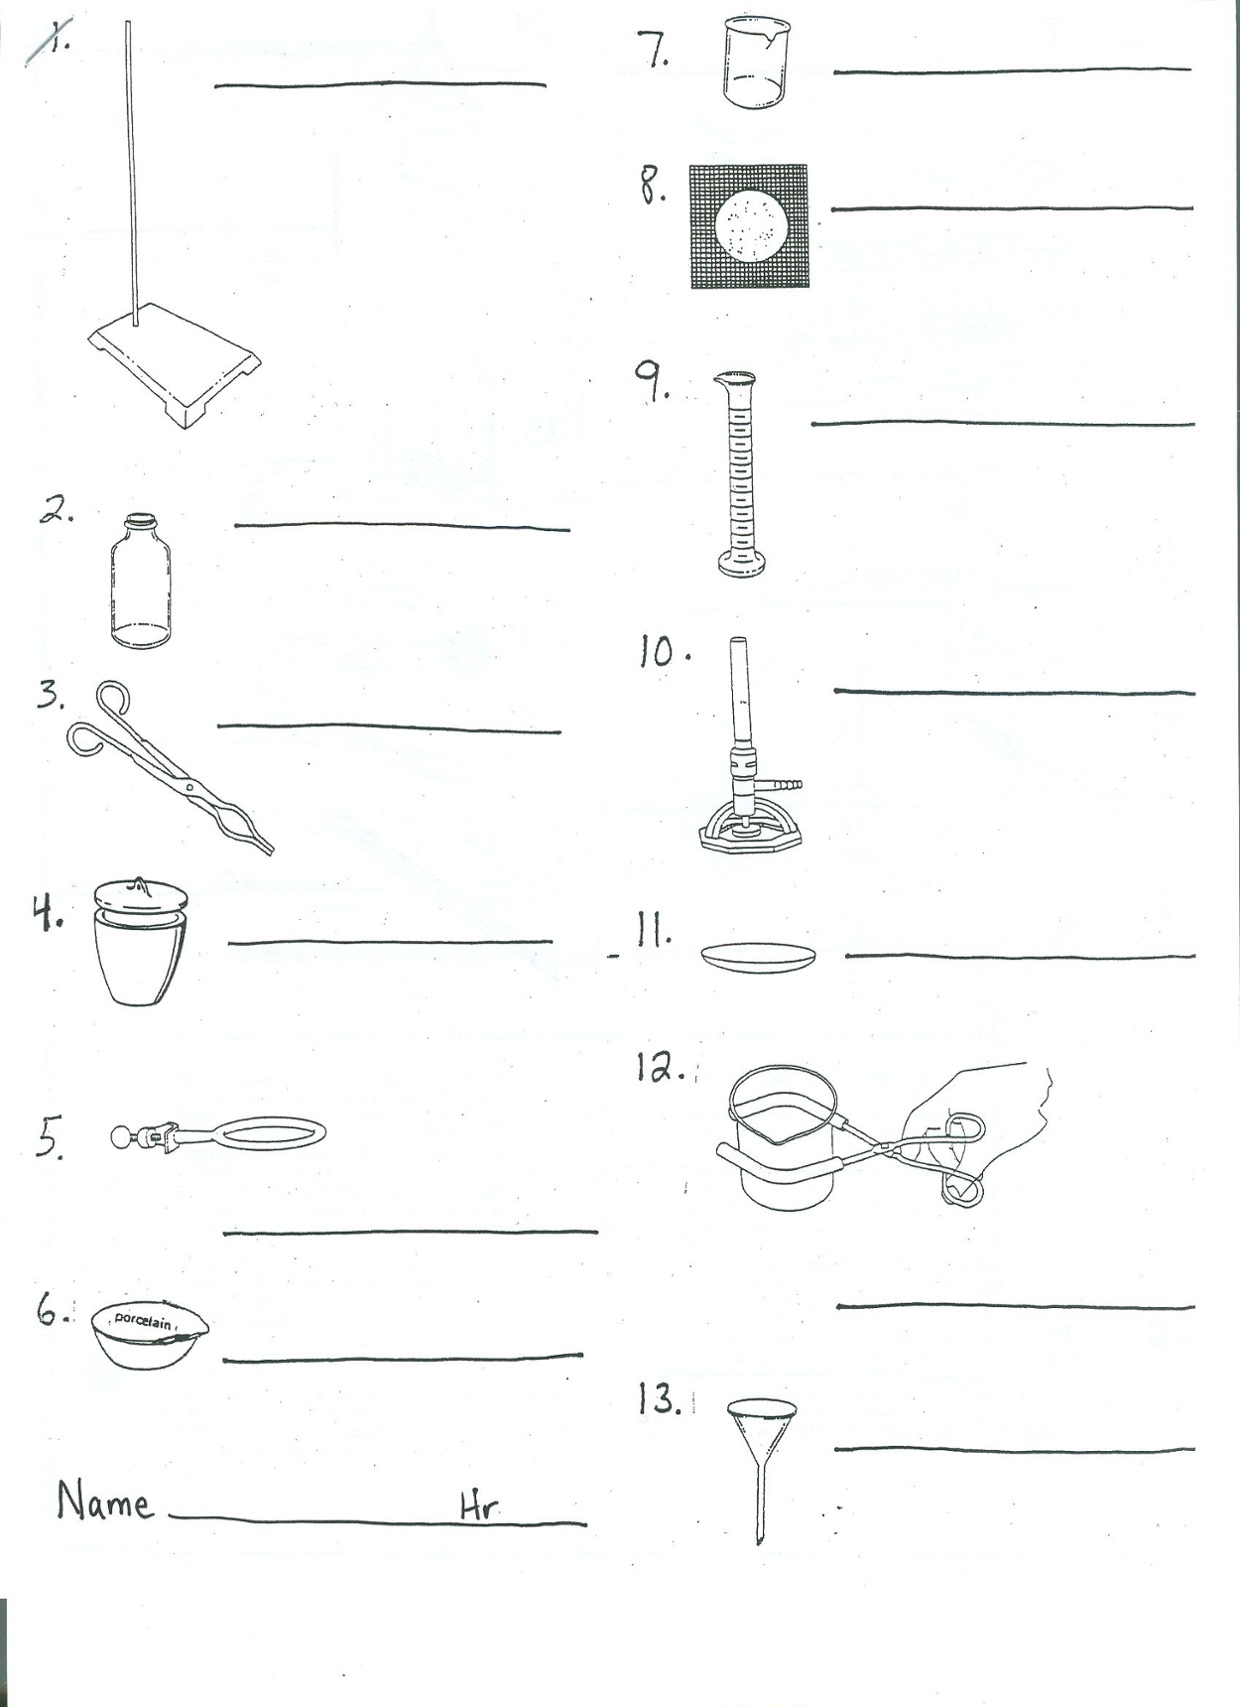 Worksheets Scientific Tools Worksheet science lab tools worksheet 17 best ideas about equipment on pinterest equipment